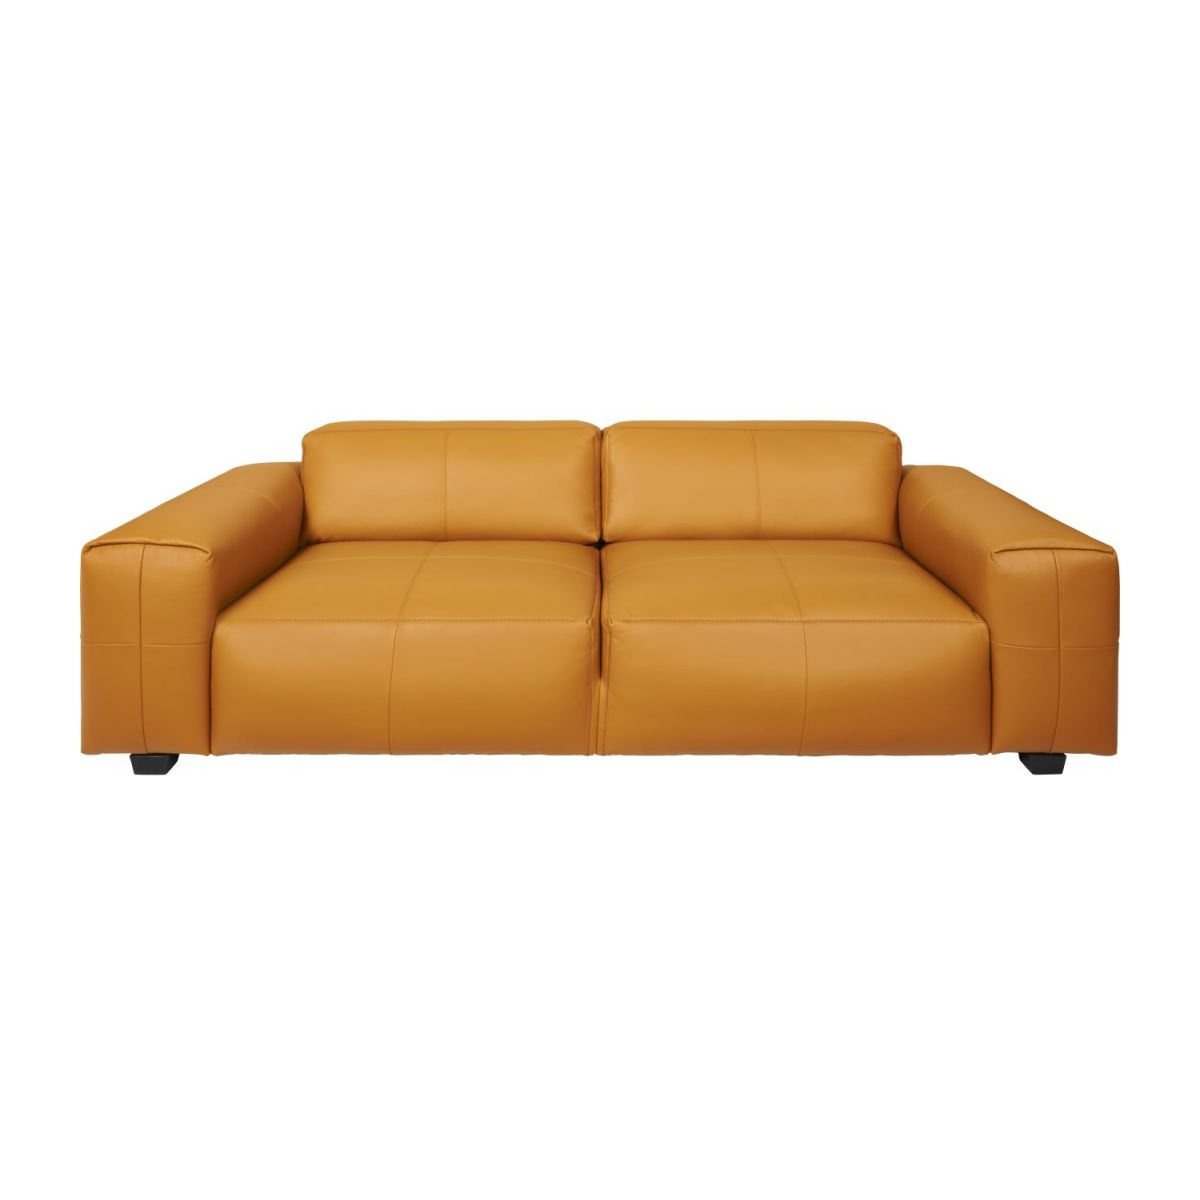 2 seater sofa in Savoy semi-aniline leather, cognac n°2